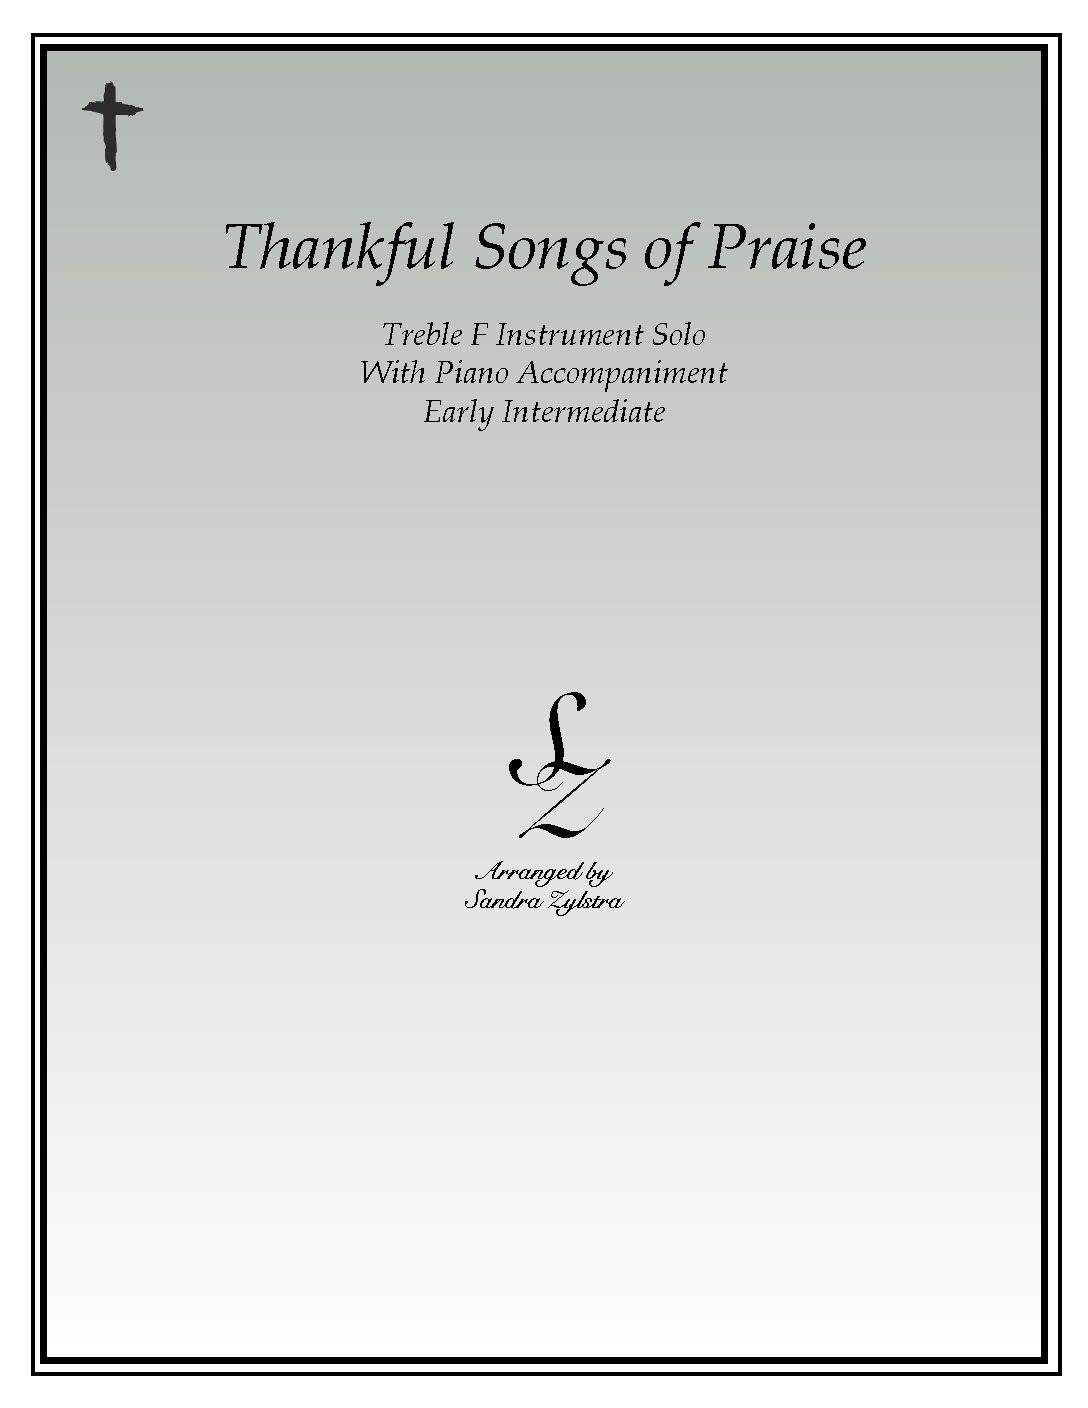 Thankful Songs Of Praise -Treble F Instrument Solo